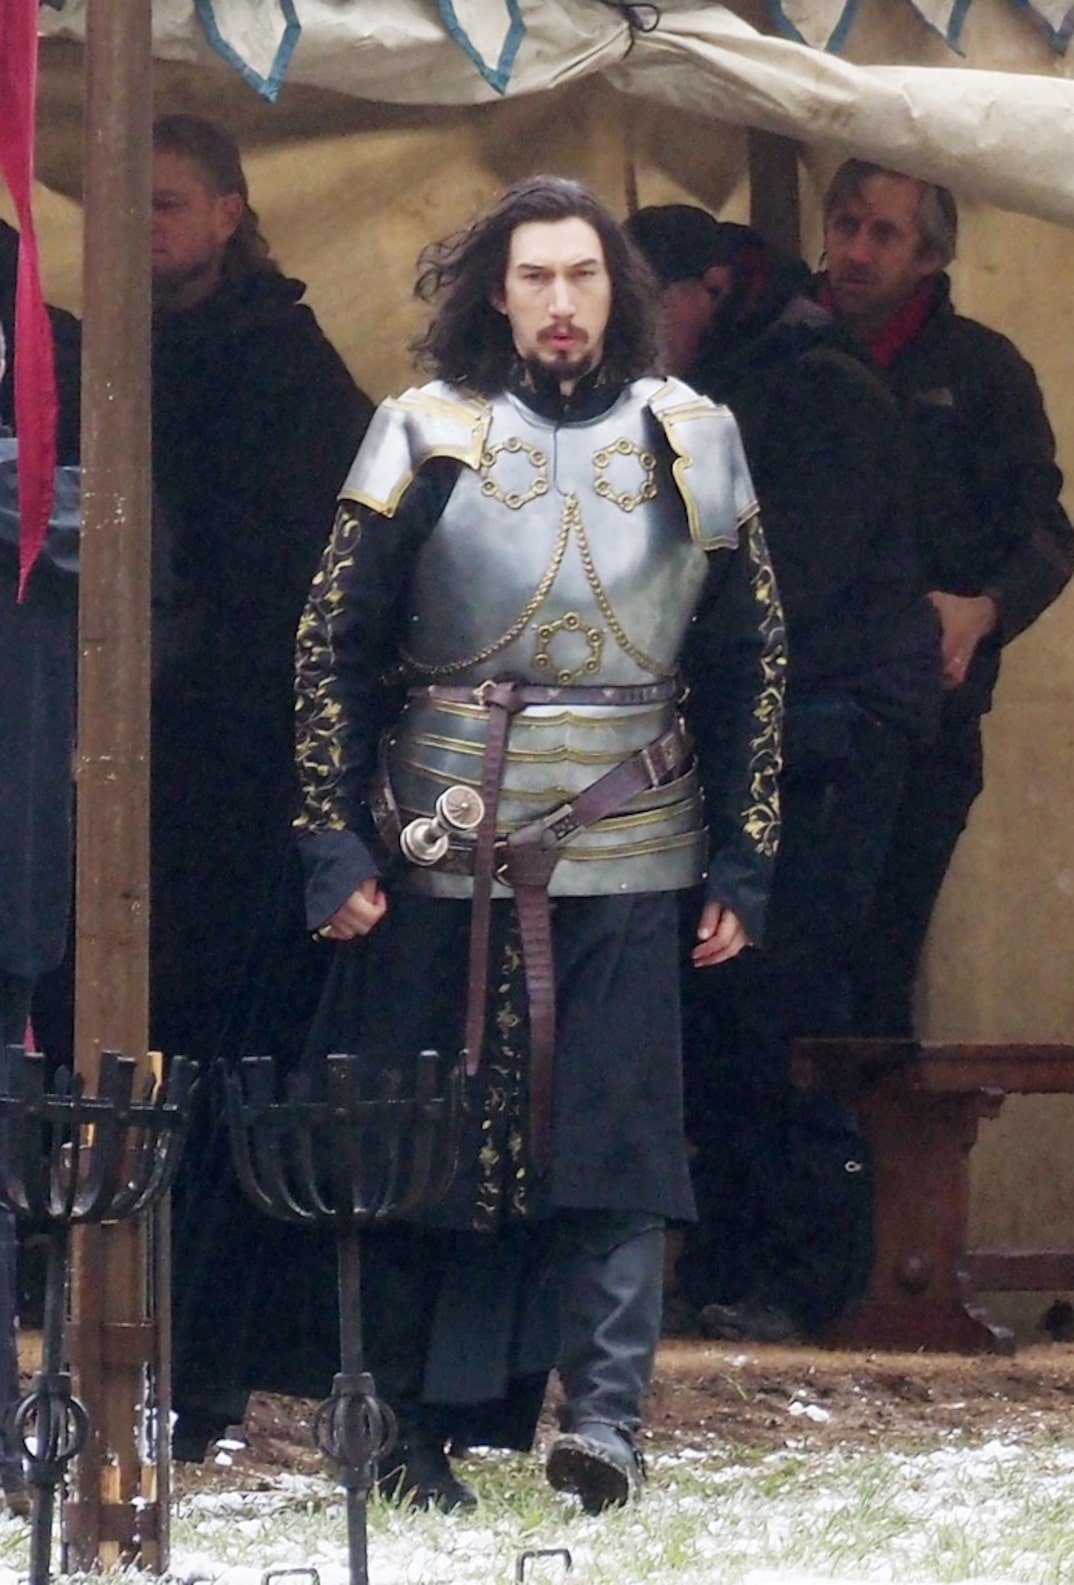 Adam Driver Becomes A Full-On Knight In The Last Duel Set Photos